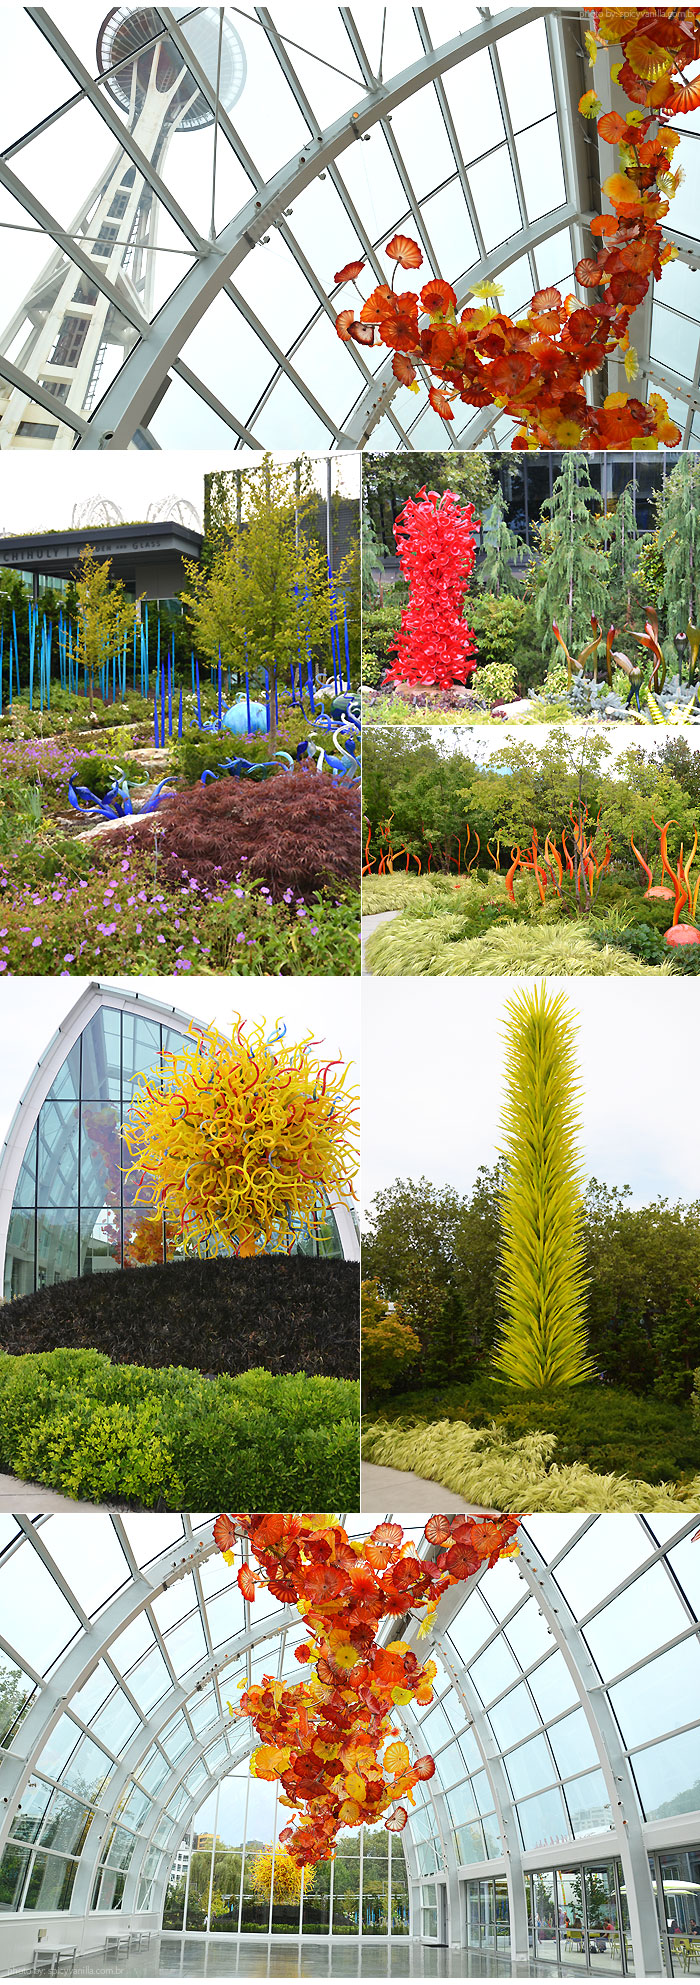 Chihuly_Garden_seattle_center